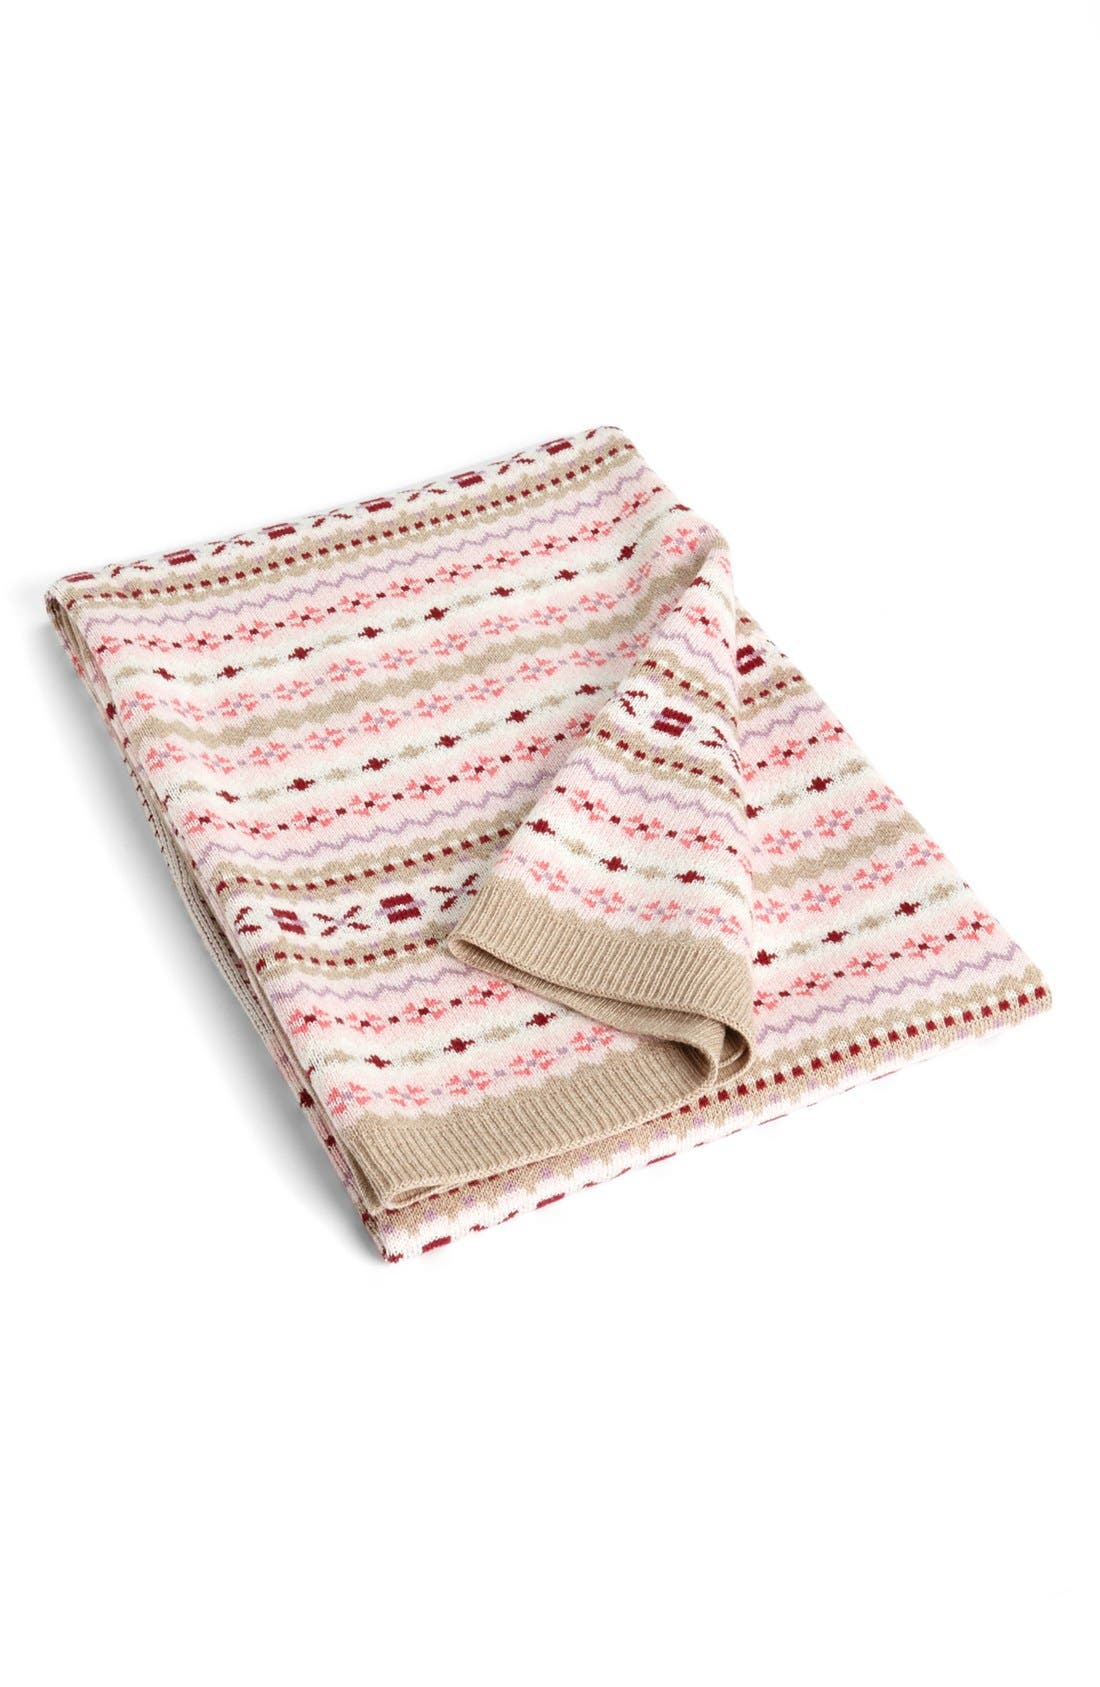 Main Image - Nordstrom Baby Cotton & Cashmere Knit Blanket